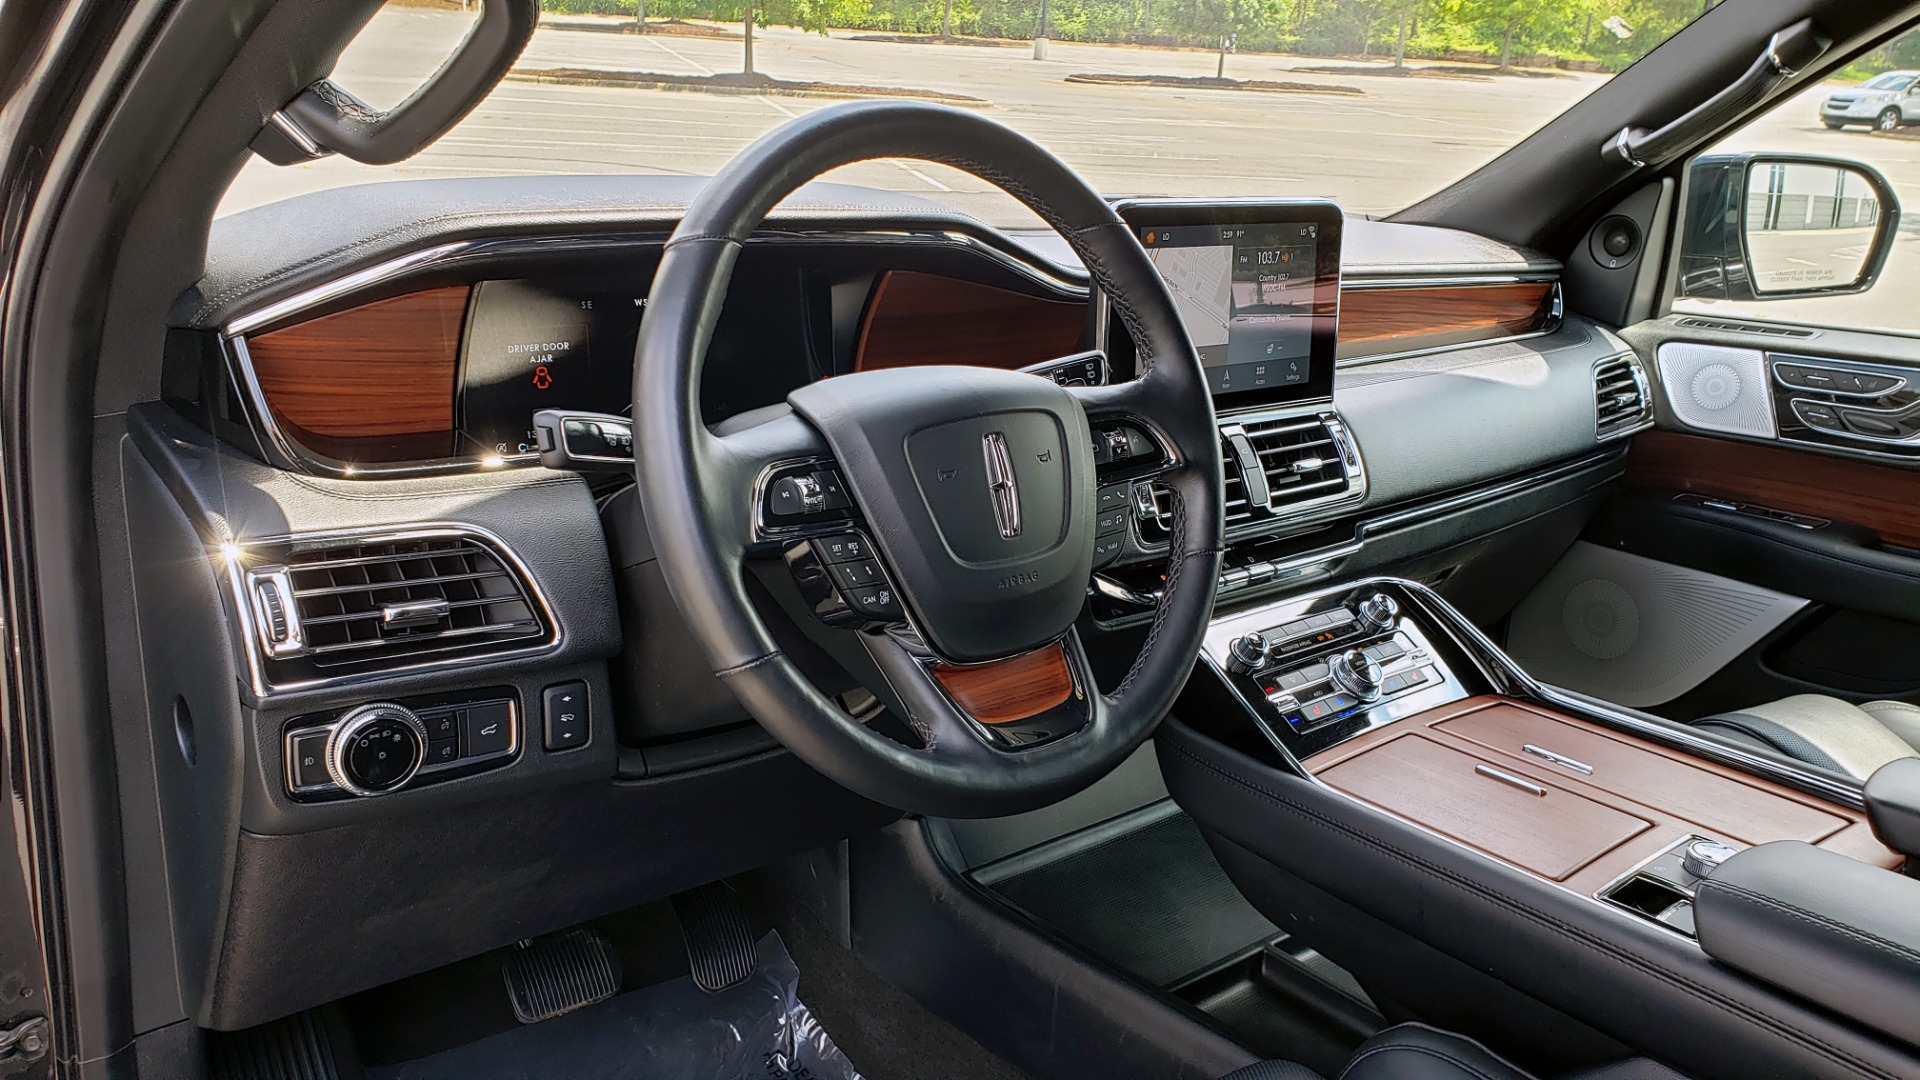 Used 2019 Lincoln NAVIGATOR RESERVE 4X4 / NAV / PANO-ROOF / REVEL ULTIMA AUDIO / 3-ROW / REARVIEW for sale $74,795 at Formula Imports in Charlotte NC 28227 44